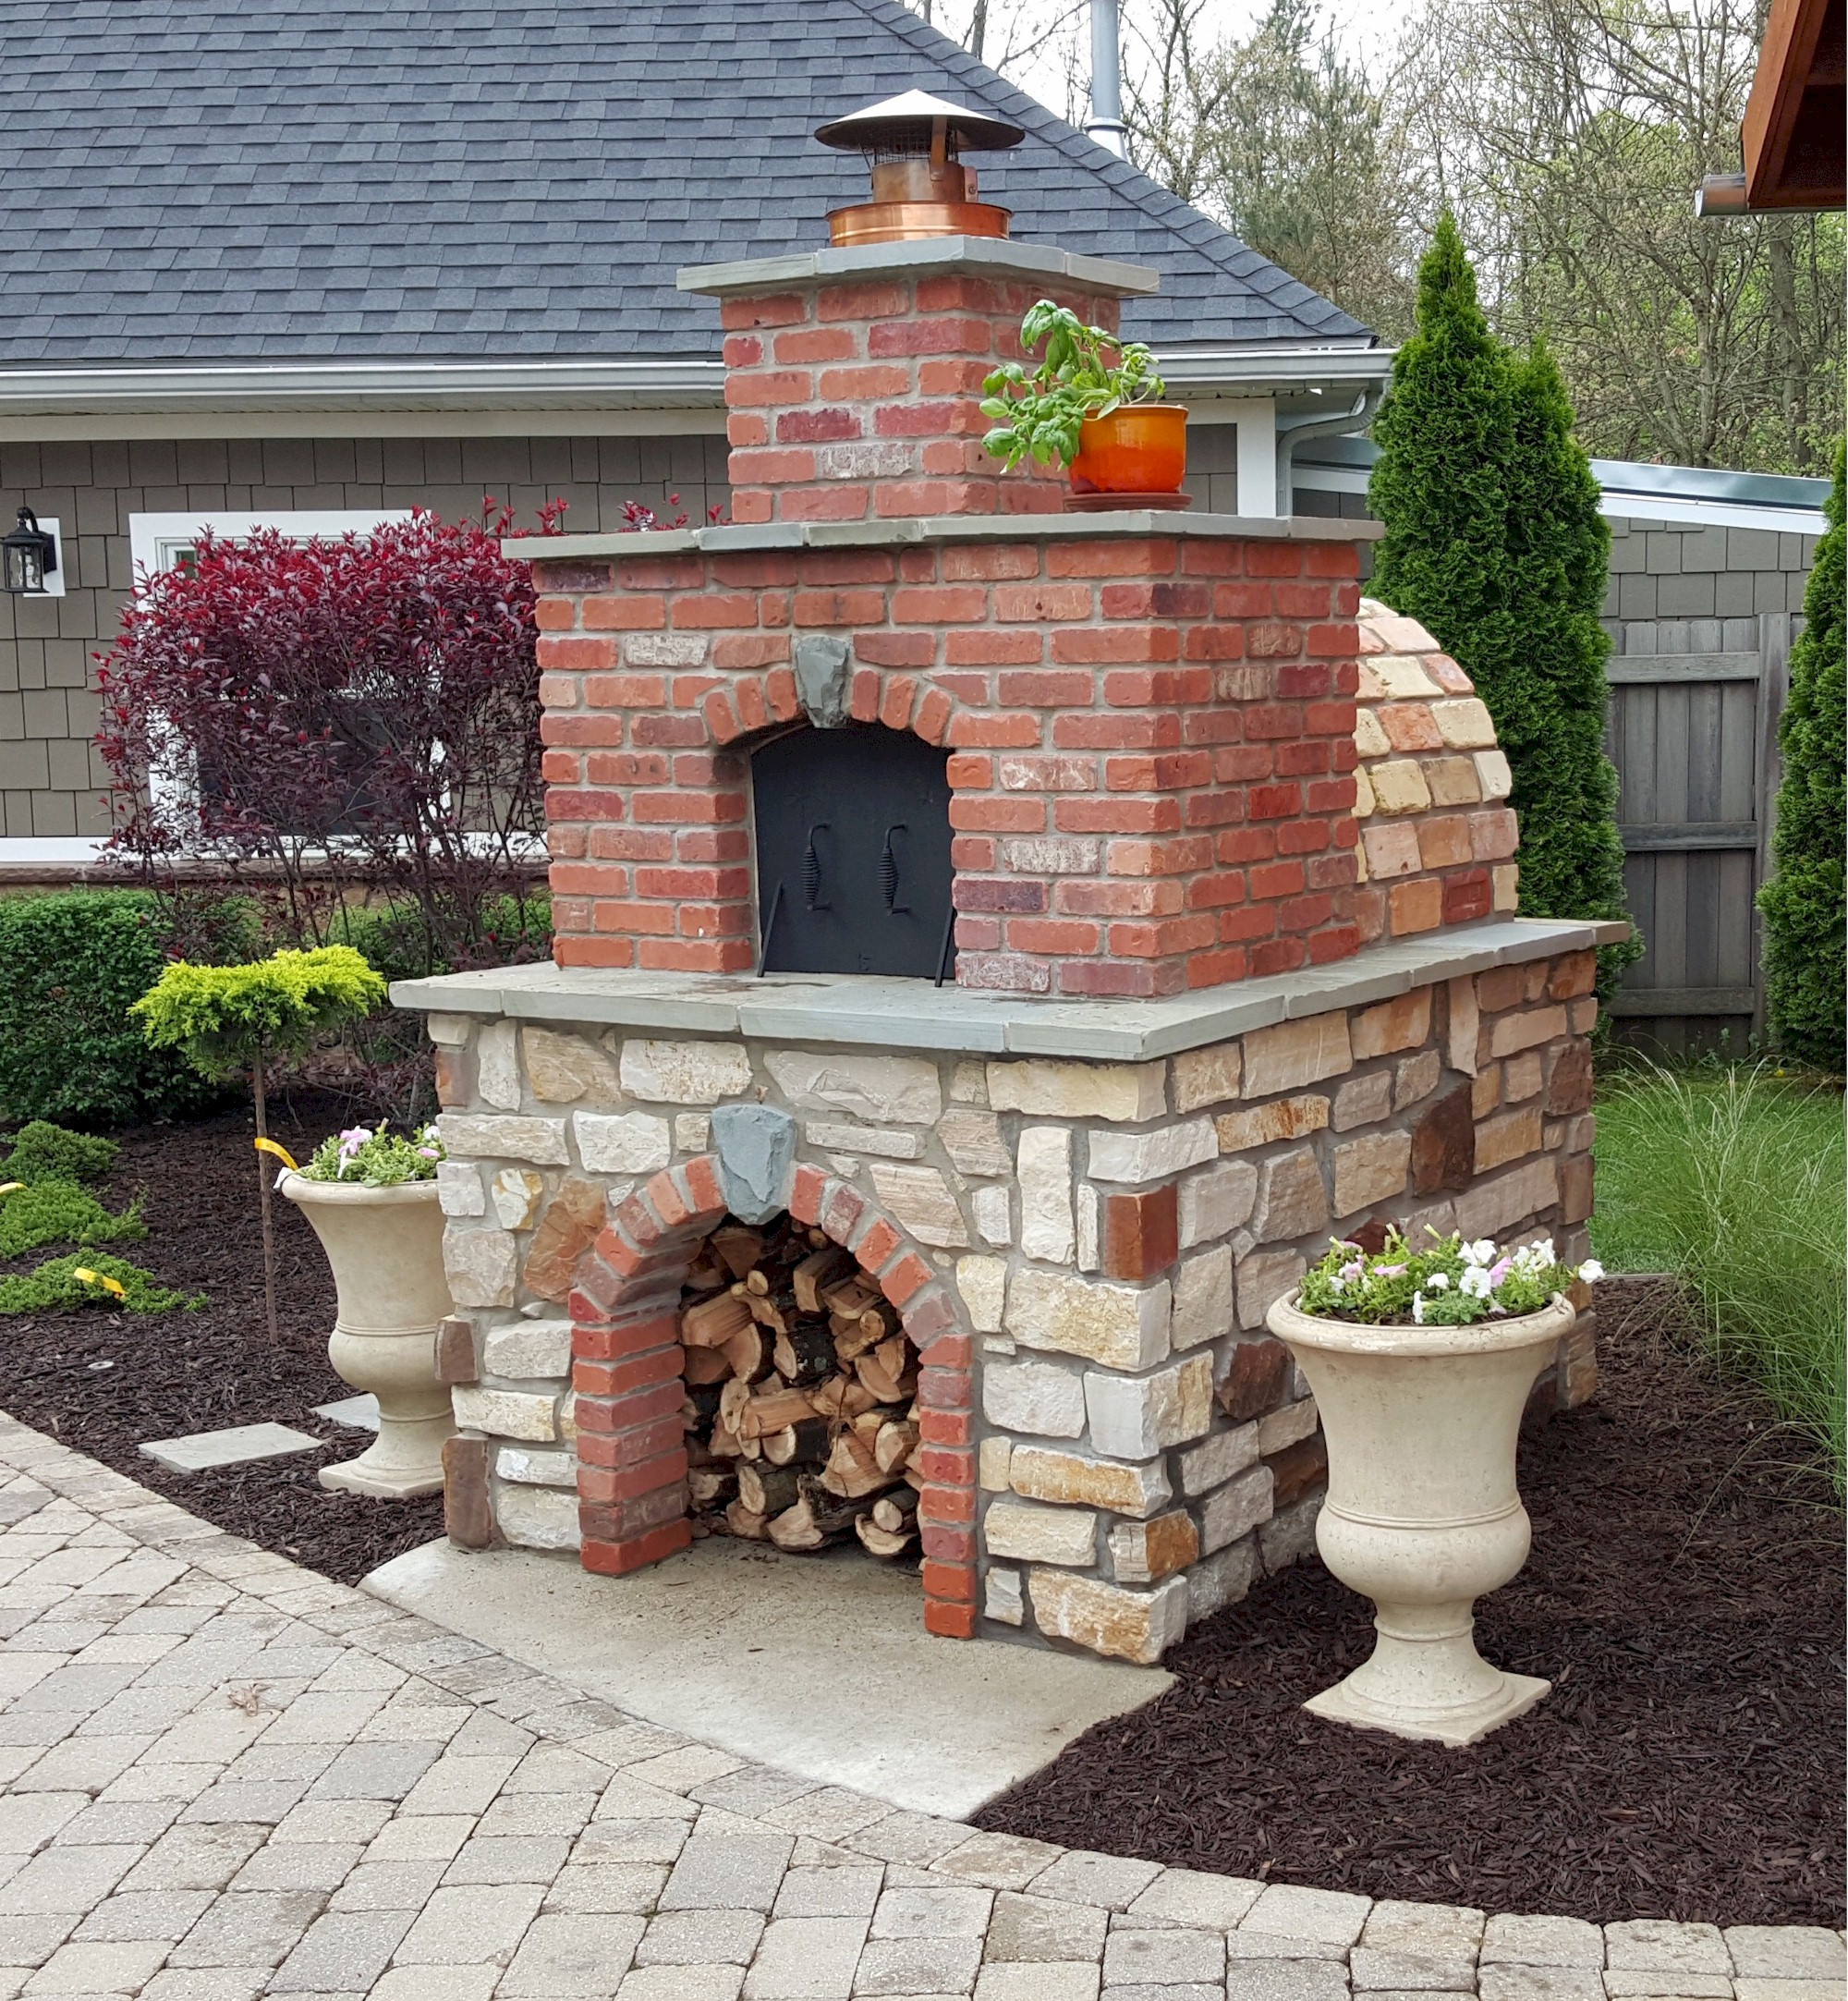 Outdoor Pizza Oven Plans DIY  DIY Wood Fired Outdoor Brick Pizza Ovens Are Not ly Easy